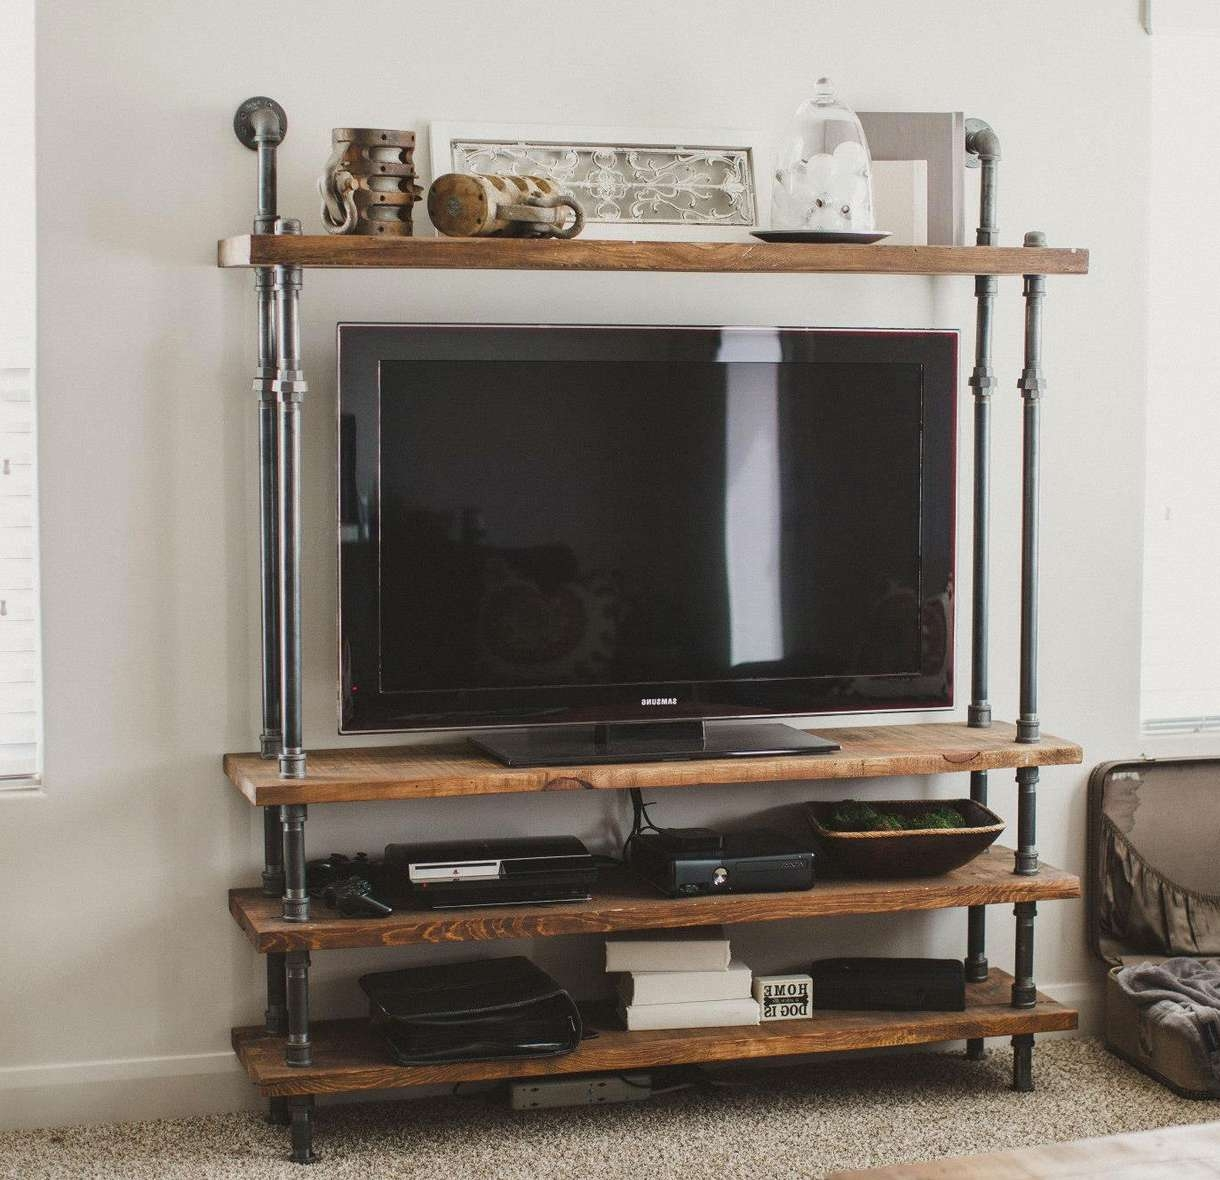 Cool Diy Industrial Pipe And Wood Combo Tv Stand With Shelves Of Within Unique Tv Stands (View 5 of 20)